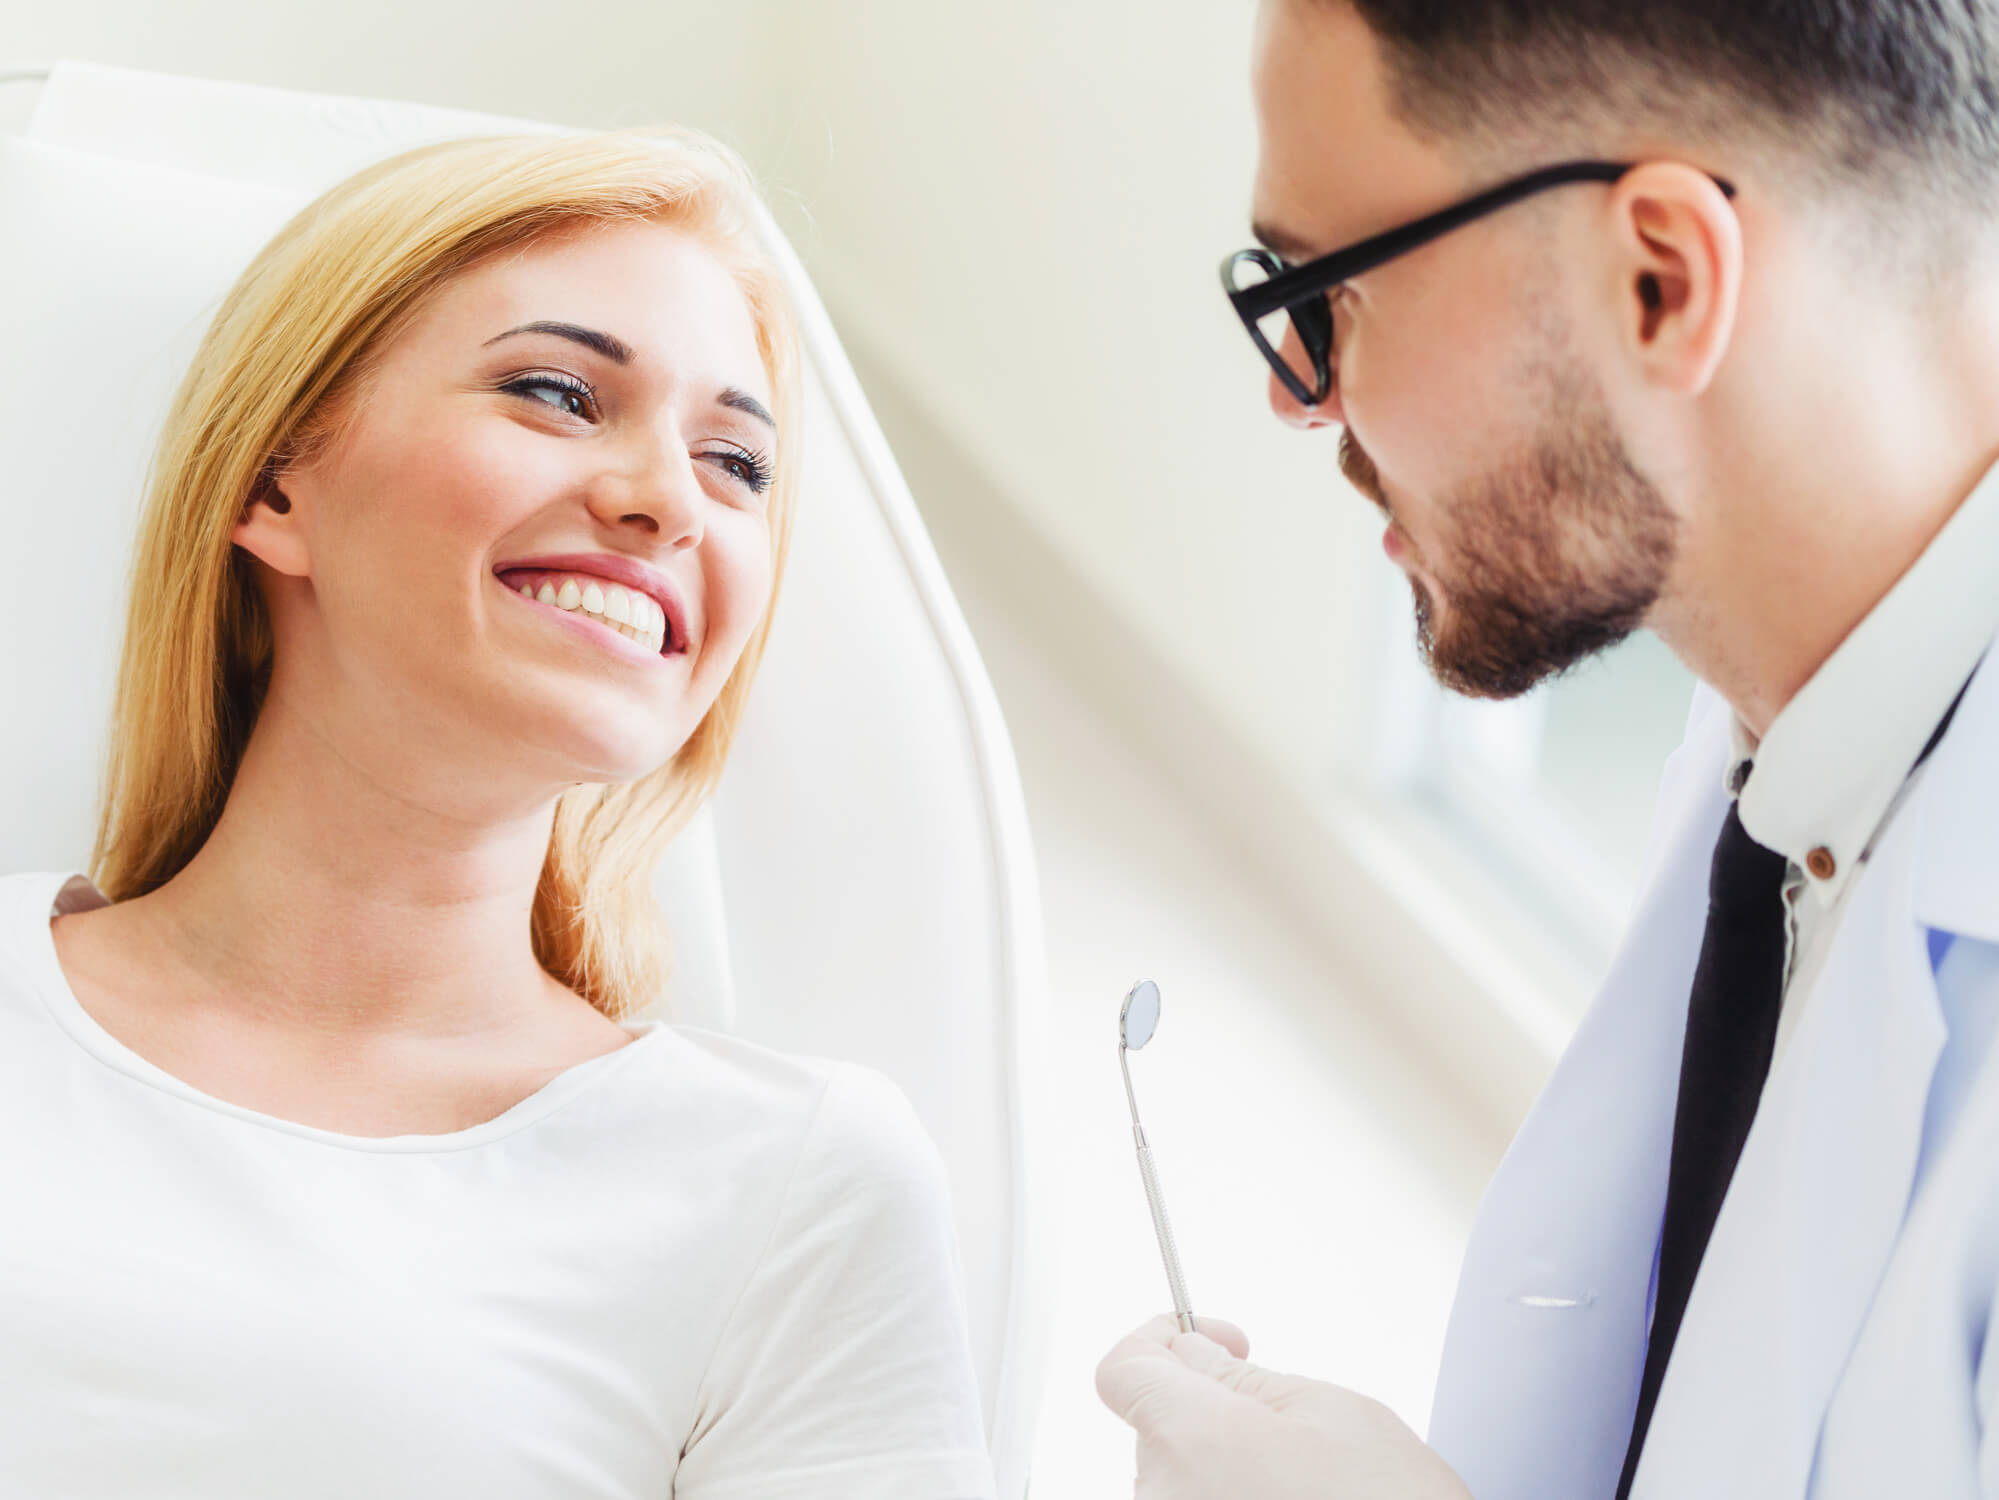 where can i find a dentist in roosevelt wa?